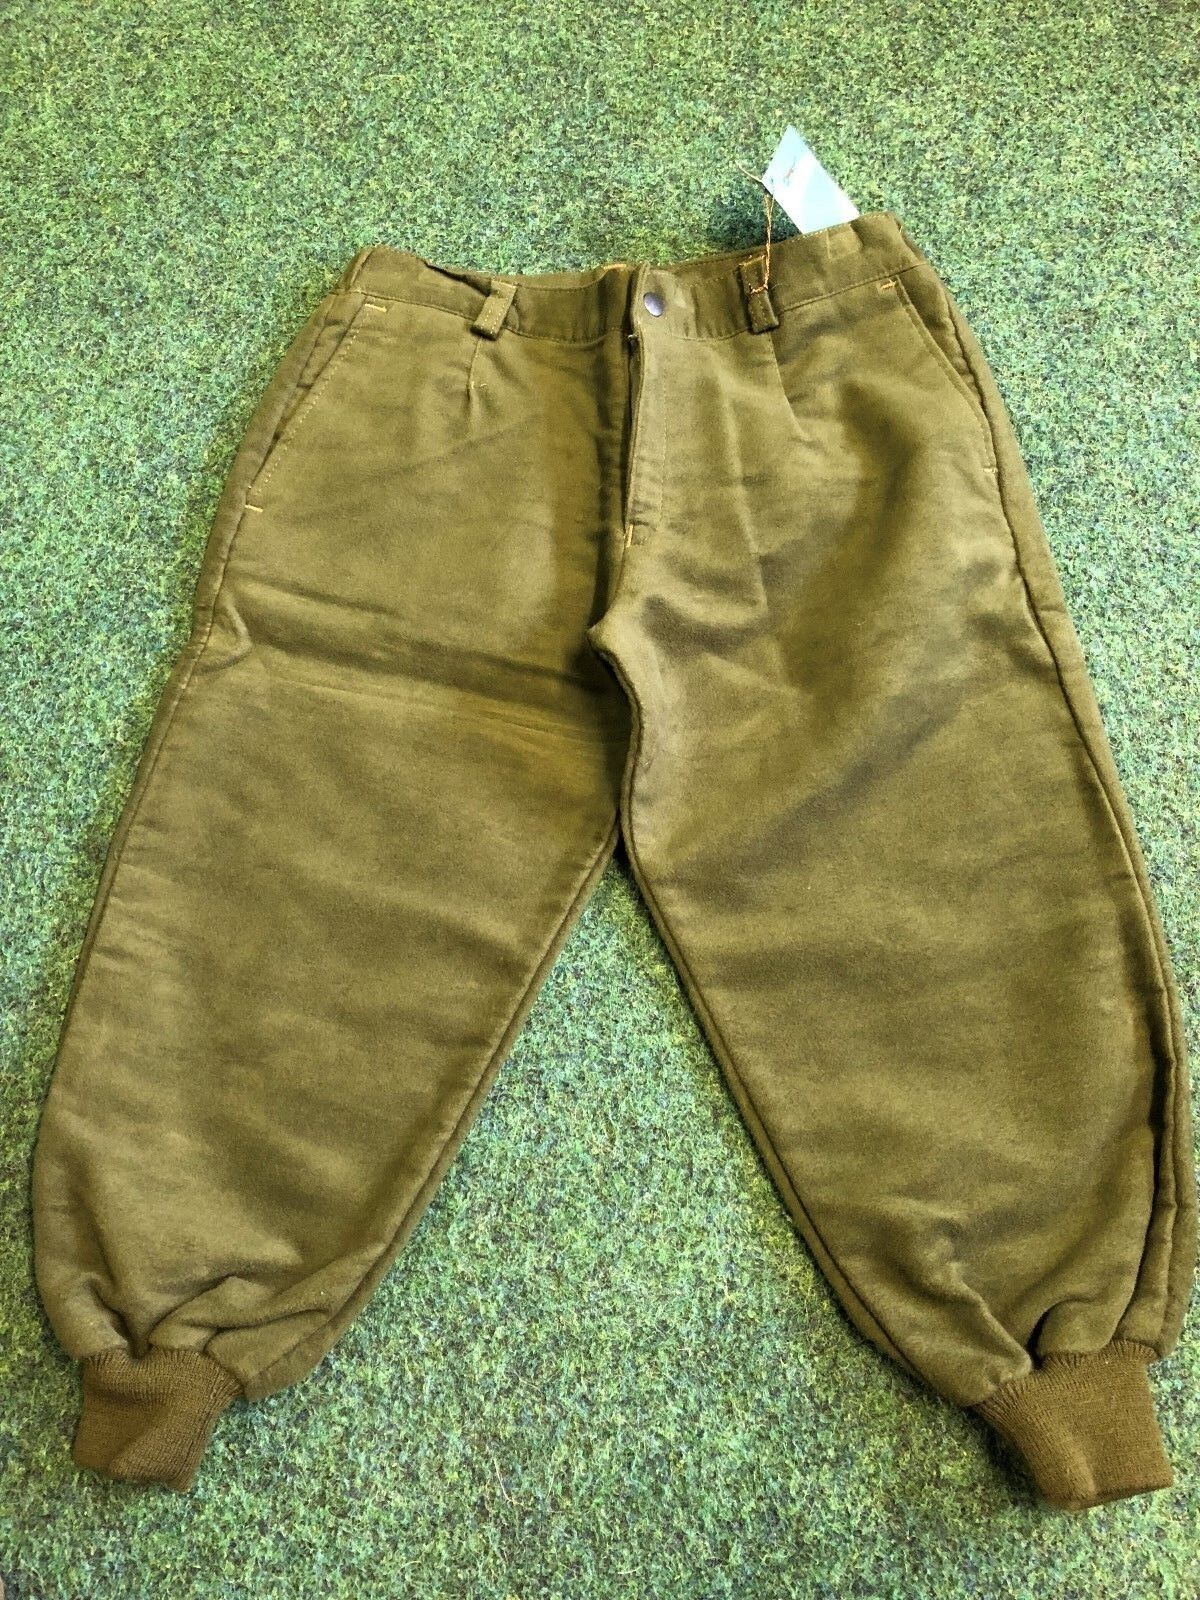 Childrens Moleskin Moleskin Childrens Breeks Plus Twos Grün Shooting Trousers 9c5e86